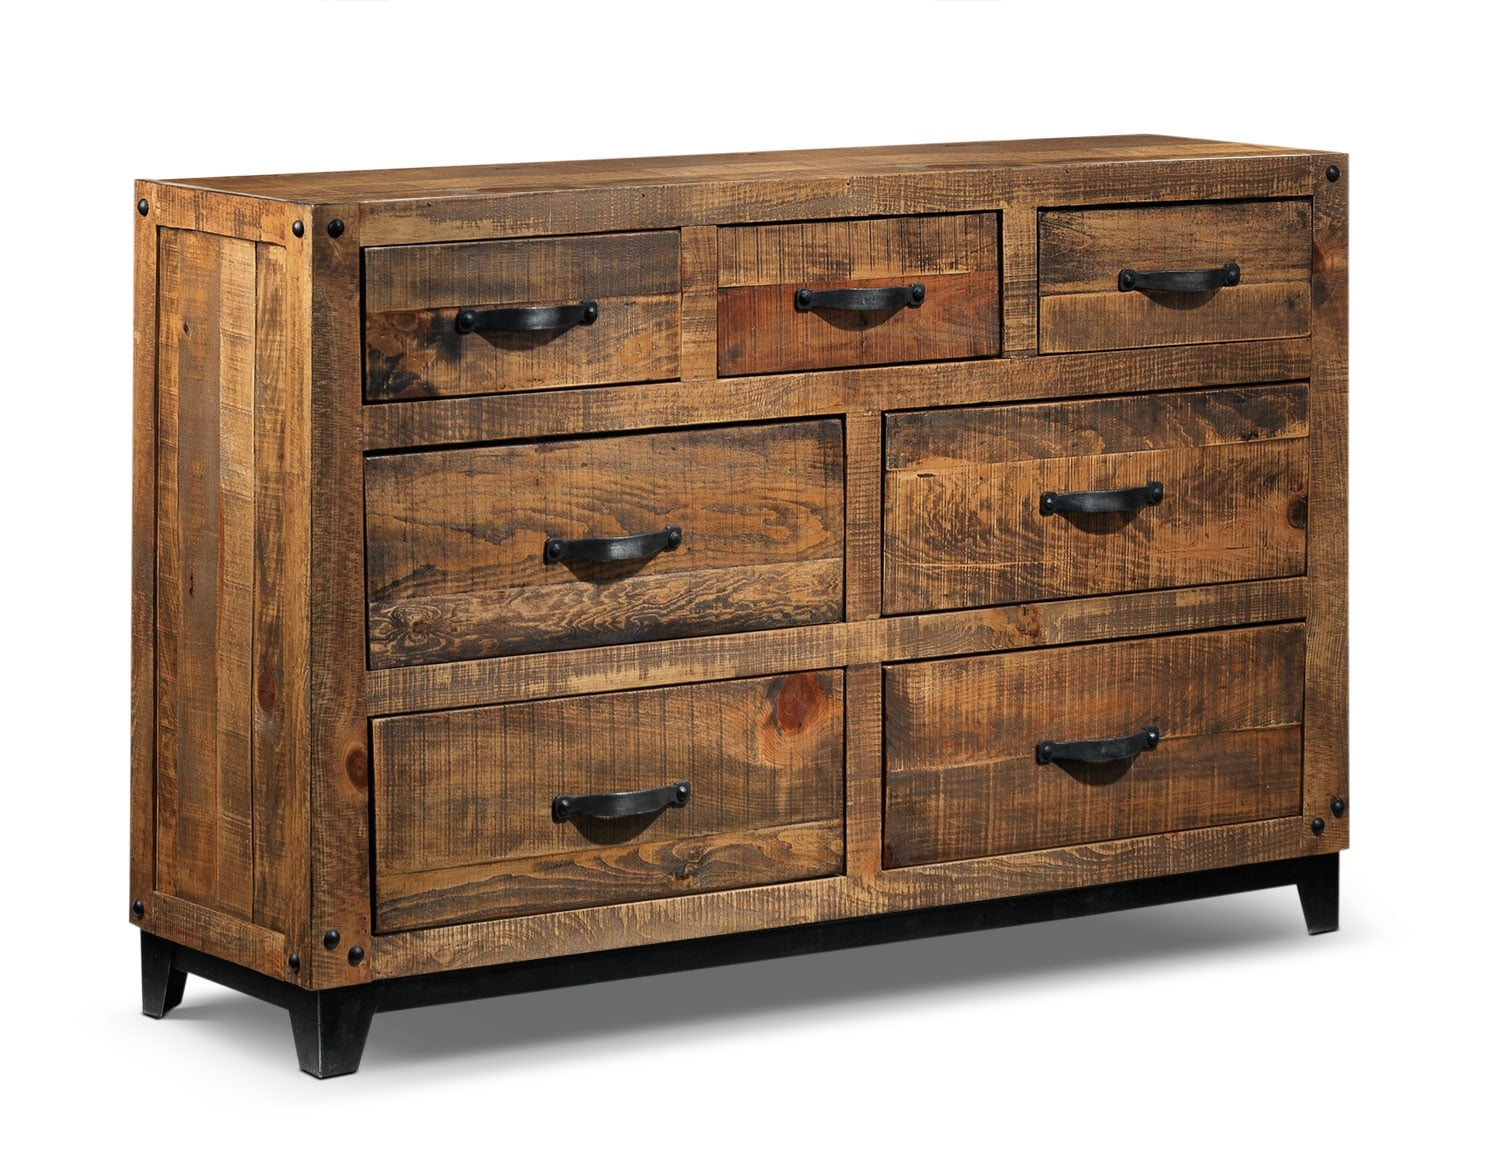 Bedroom Furniture - Maya Dresser - Rustic Pine